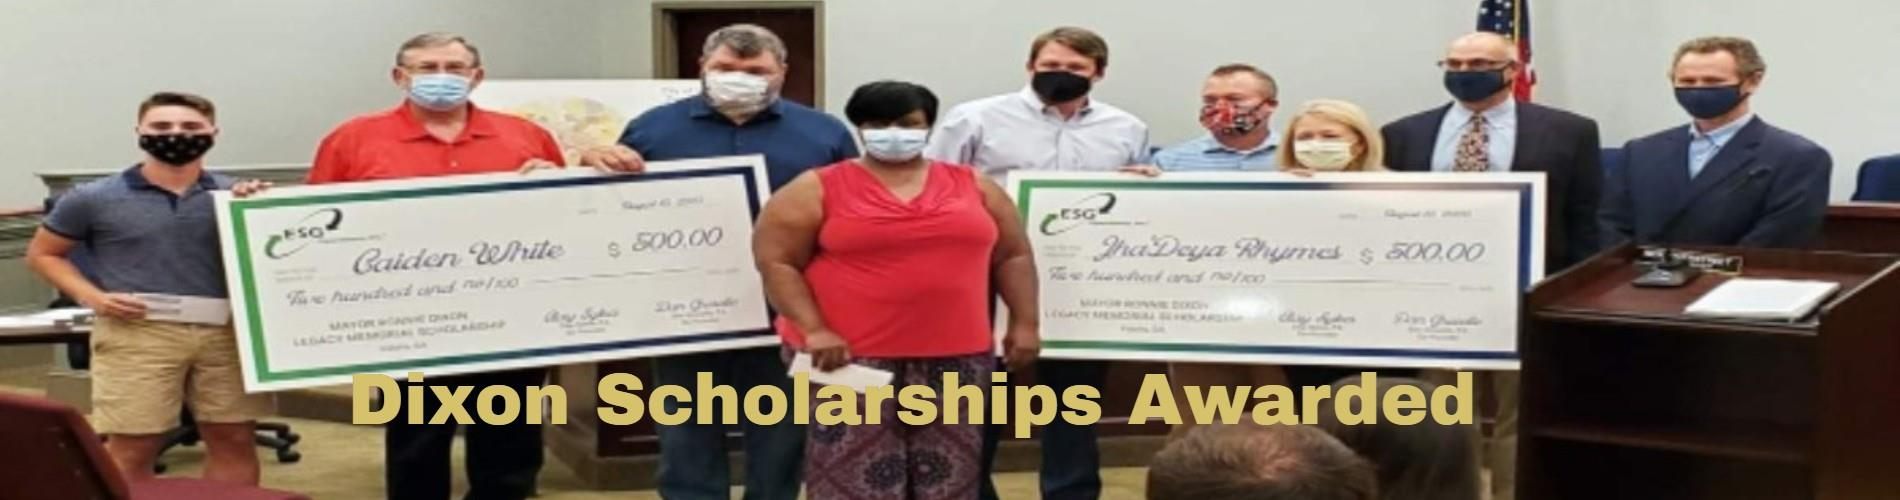 Dixon Scholarships Awarded